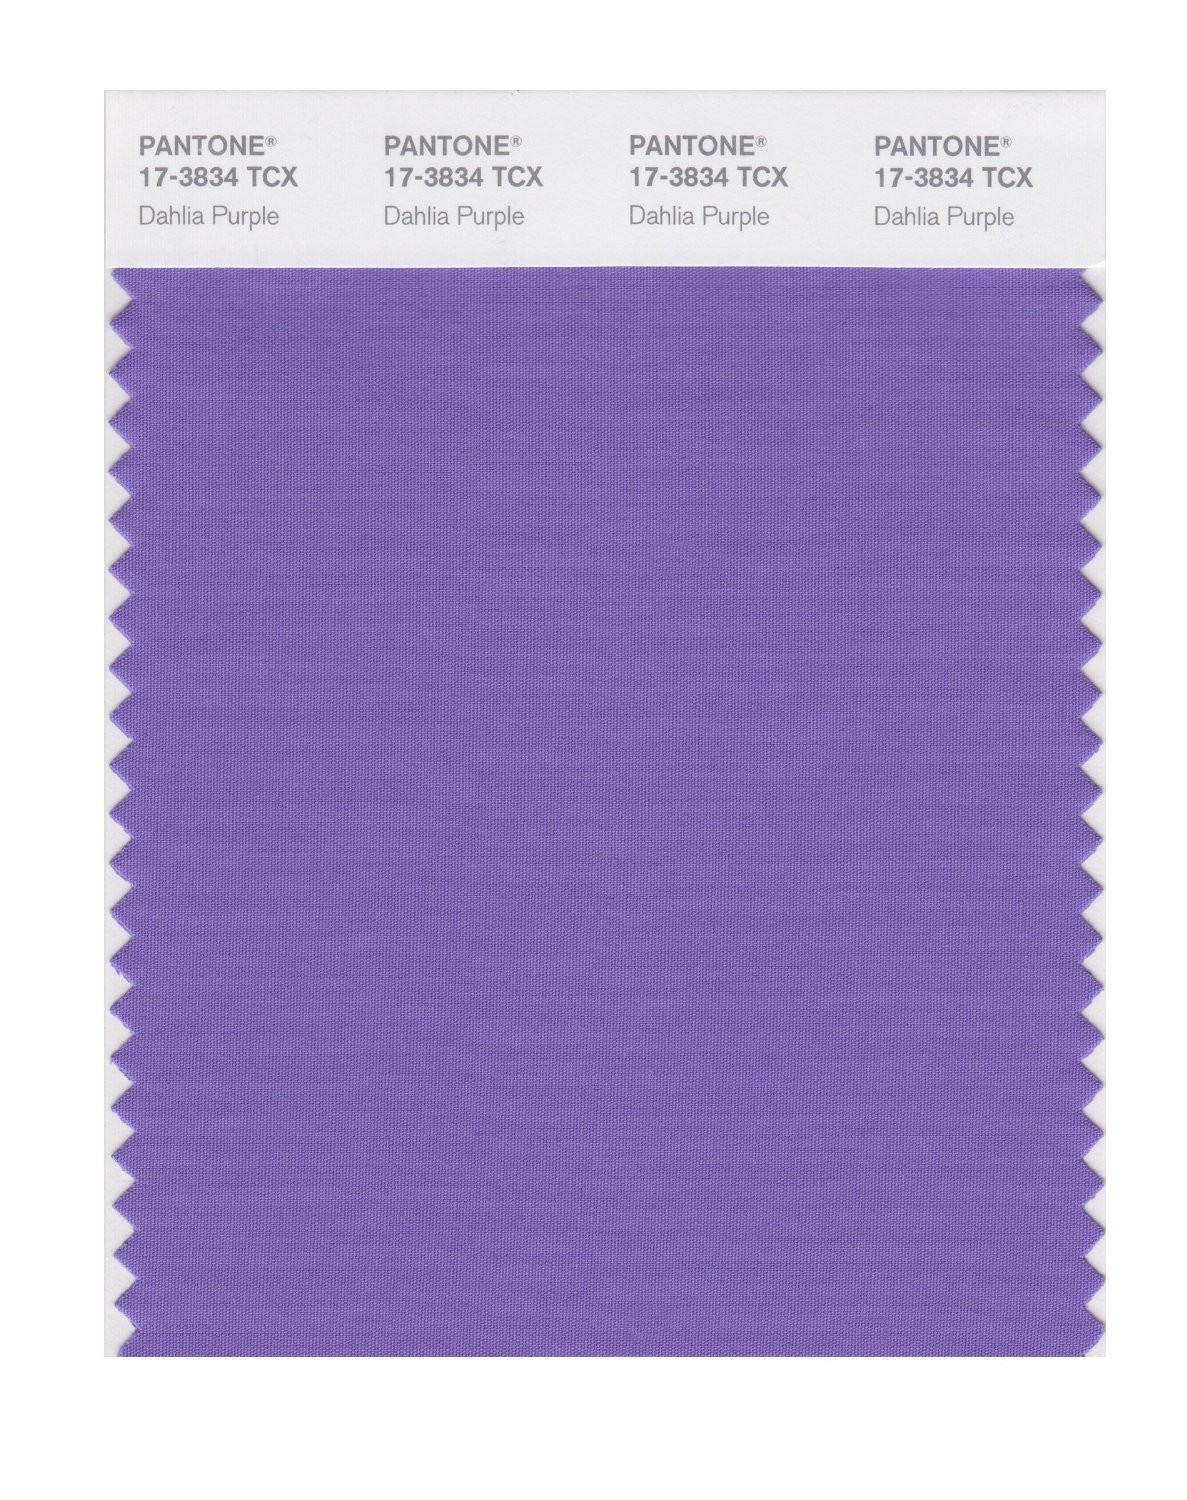 Pantone 17-3834 TCX Swatch Card Dahlia Purple